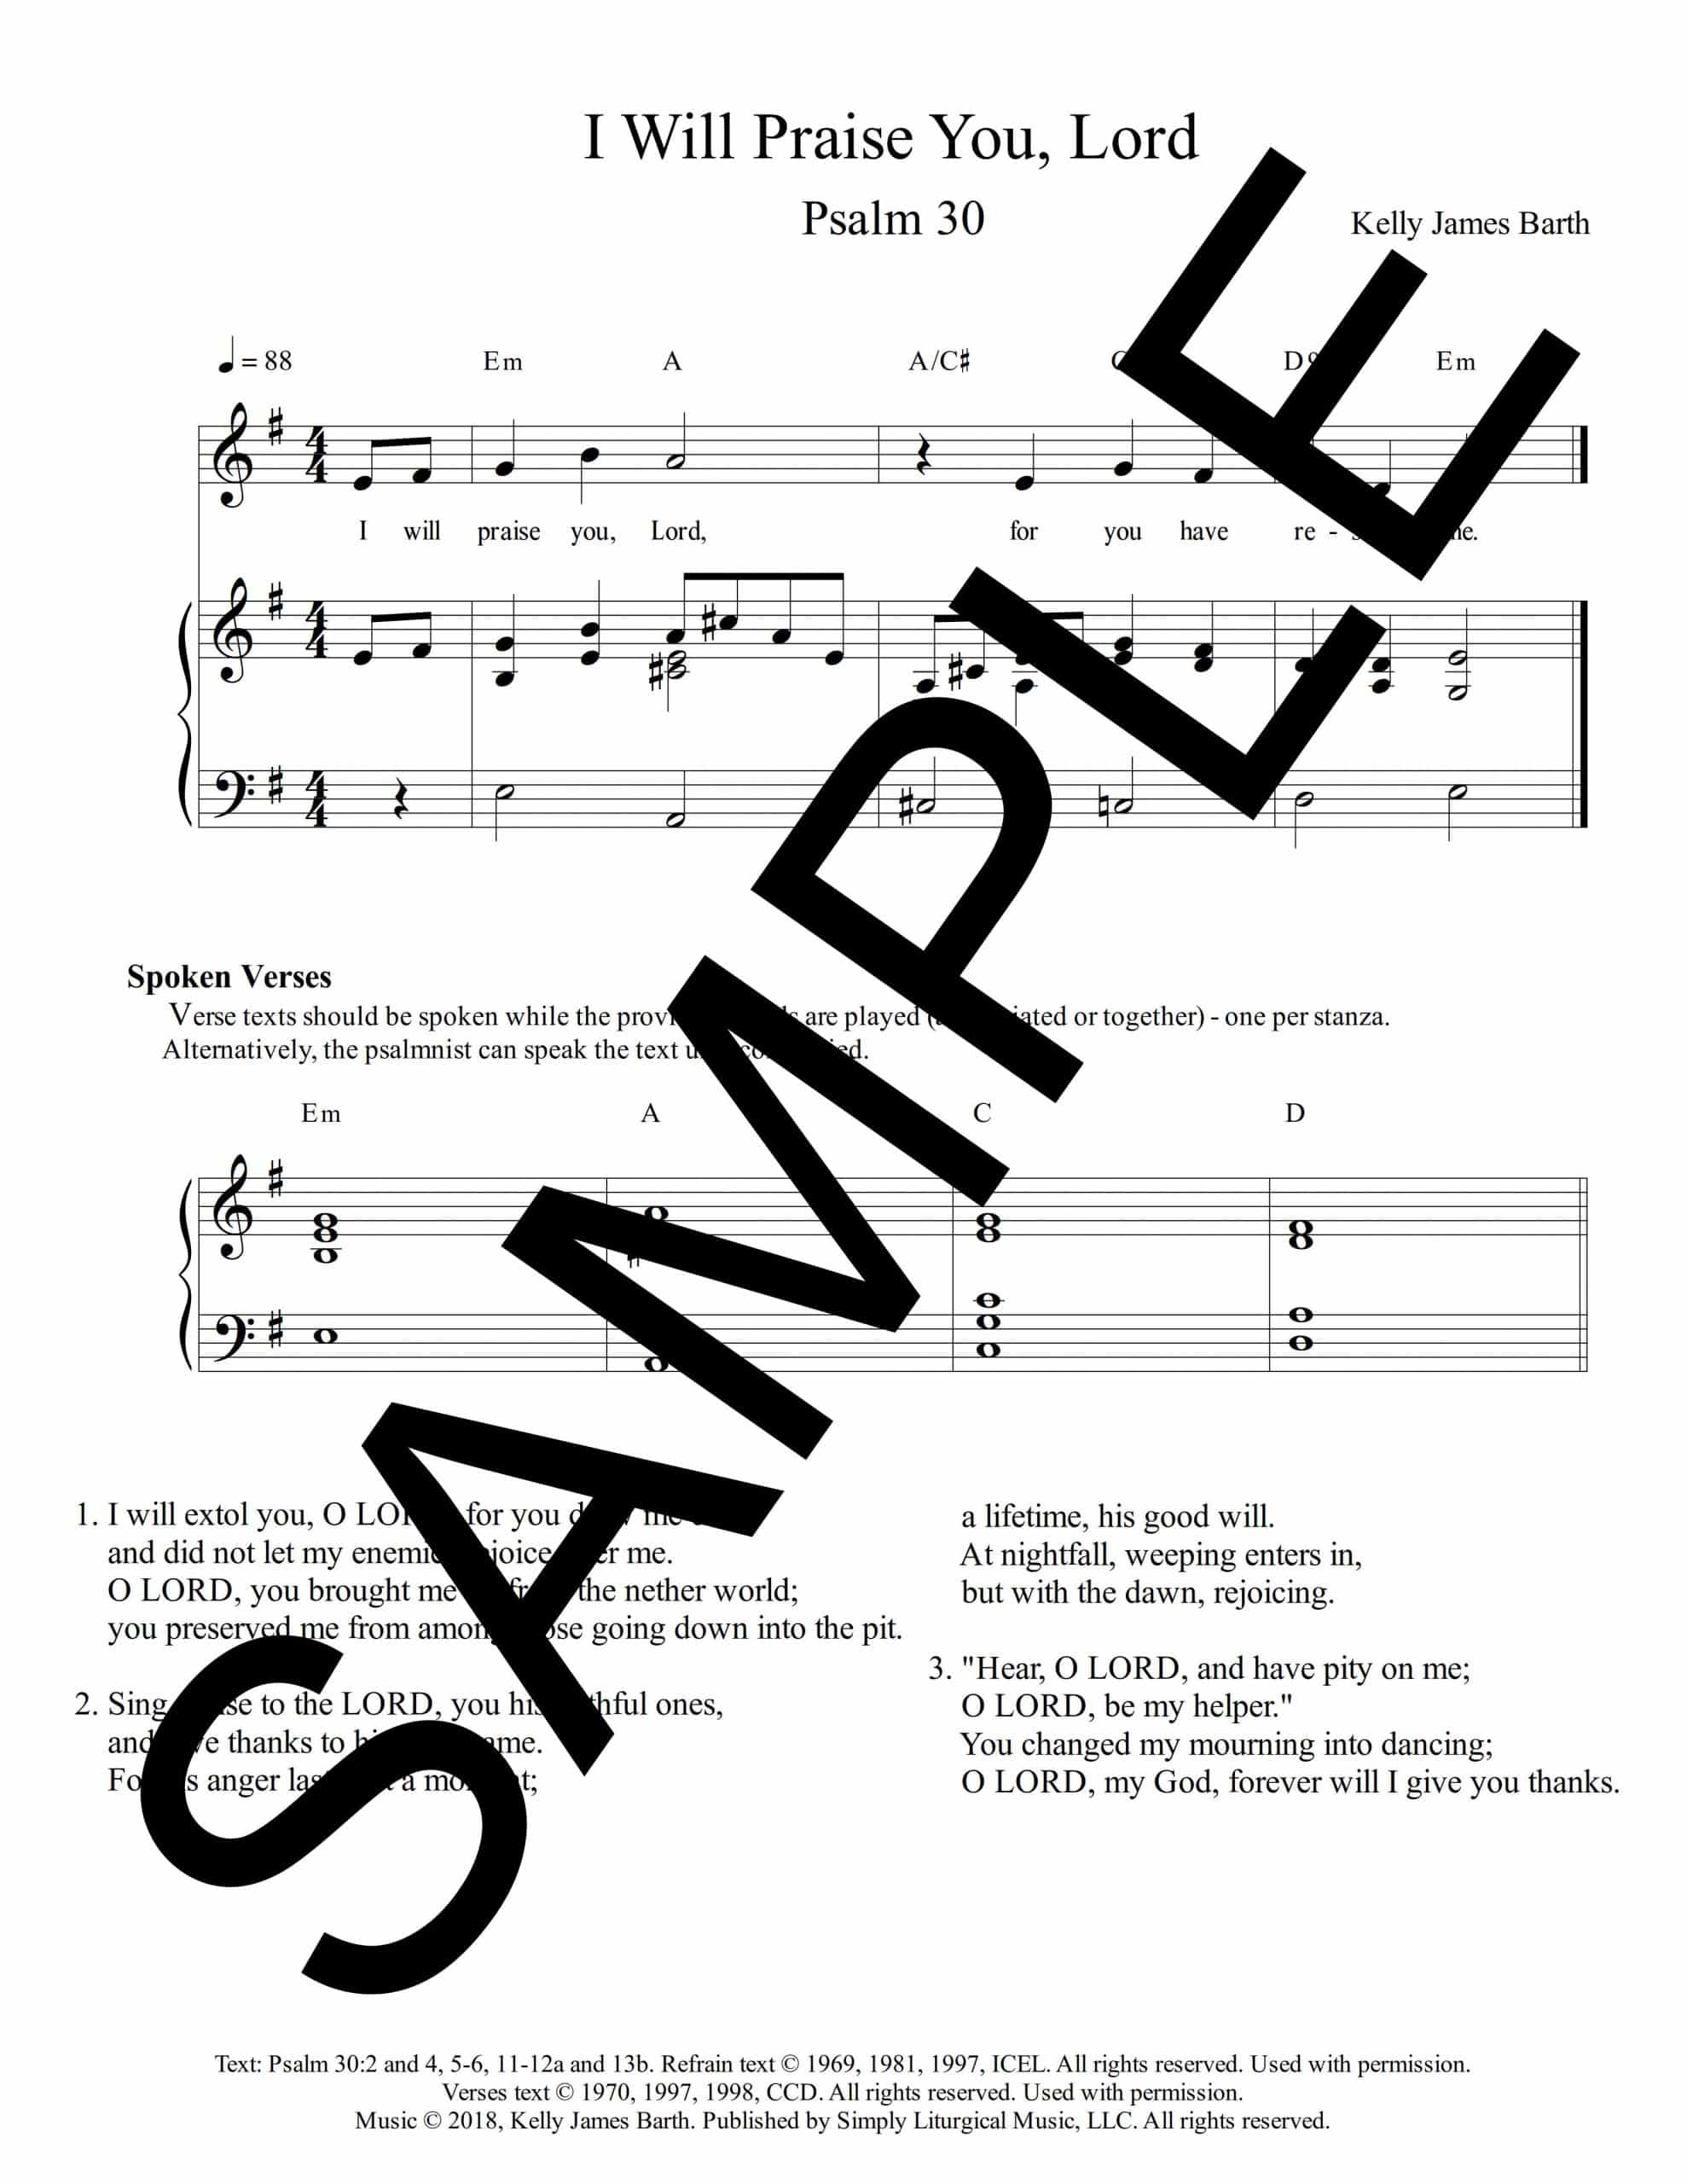 Psalm 30 I Will Praise You Lord Barth Sample Sheet Music scaled